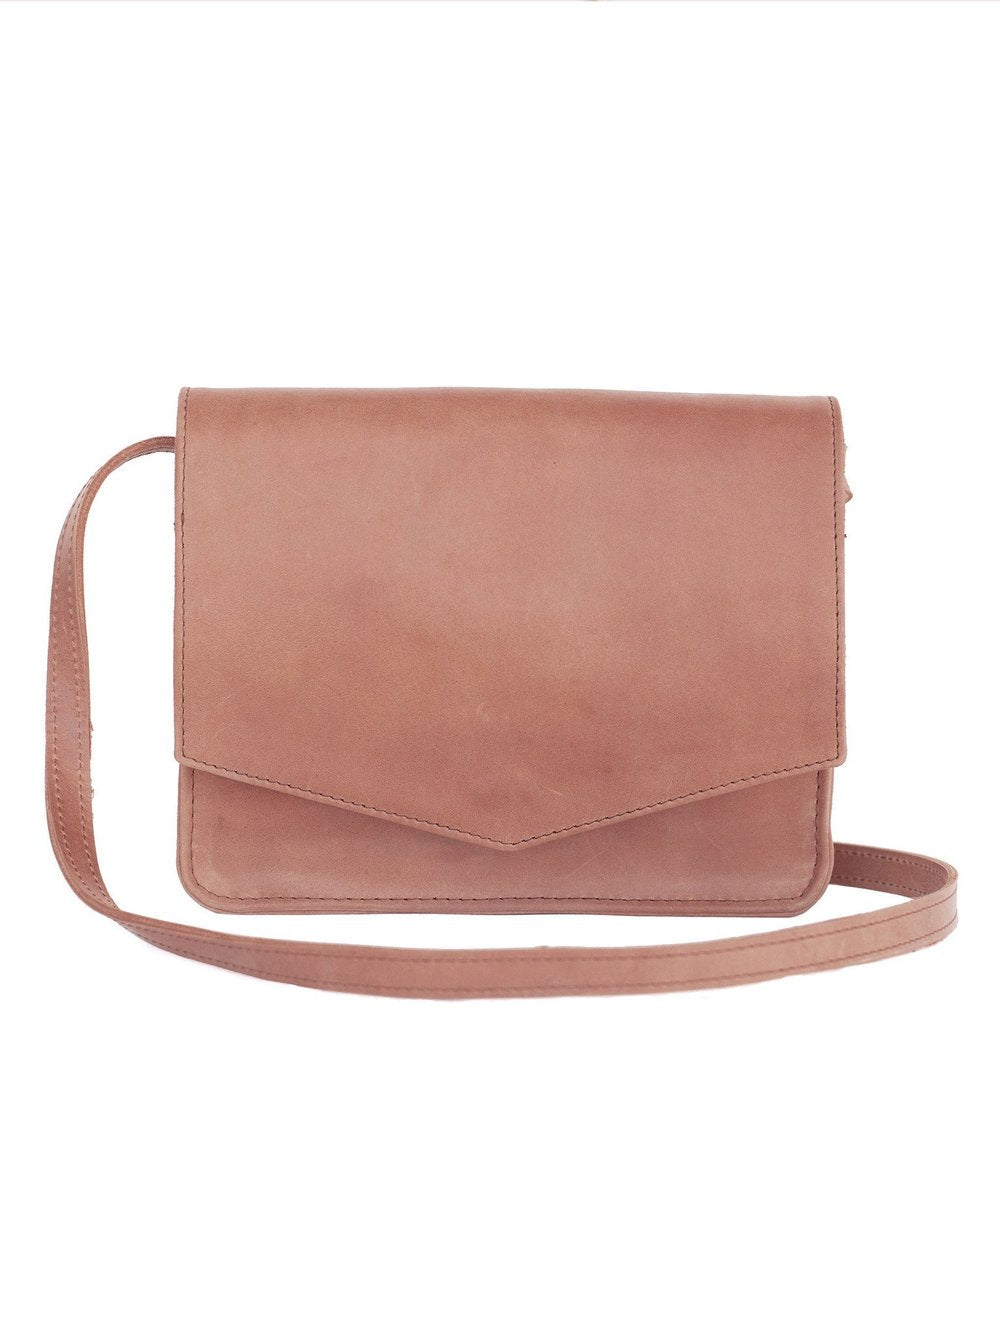 Tigist_Crossbody_Dusty_Rose.jpg